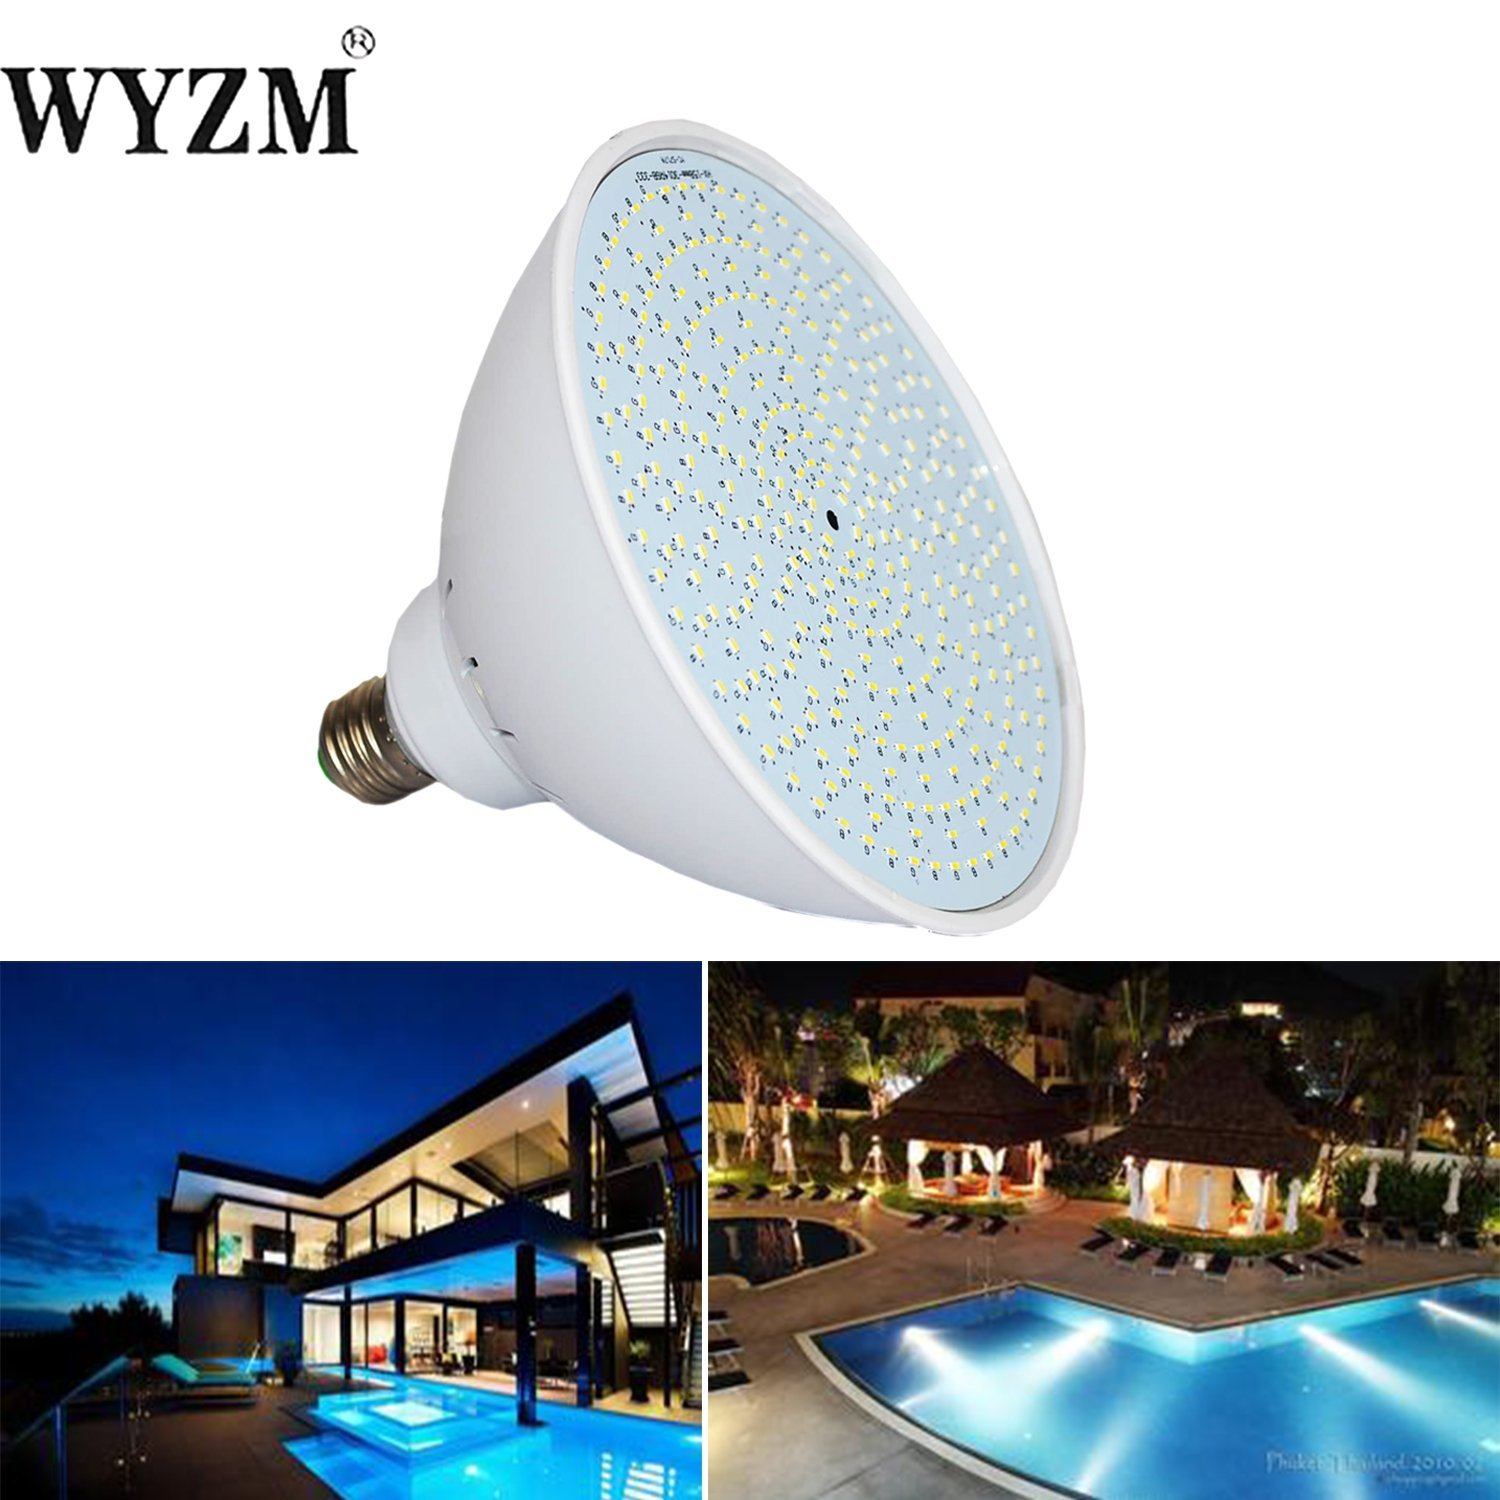 Get Quotations Wyzm 120v 35watt Color Changing Led Pool Light Bulb For Inground Fit In